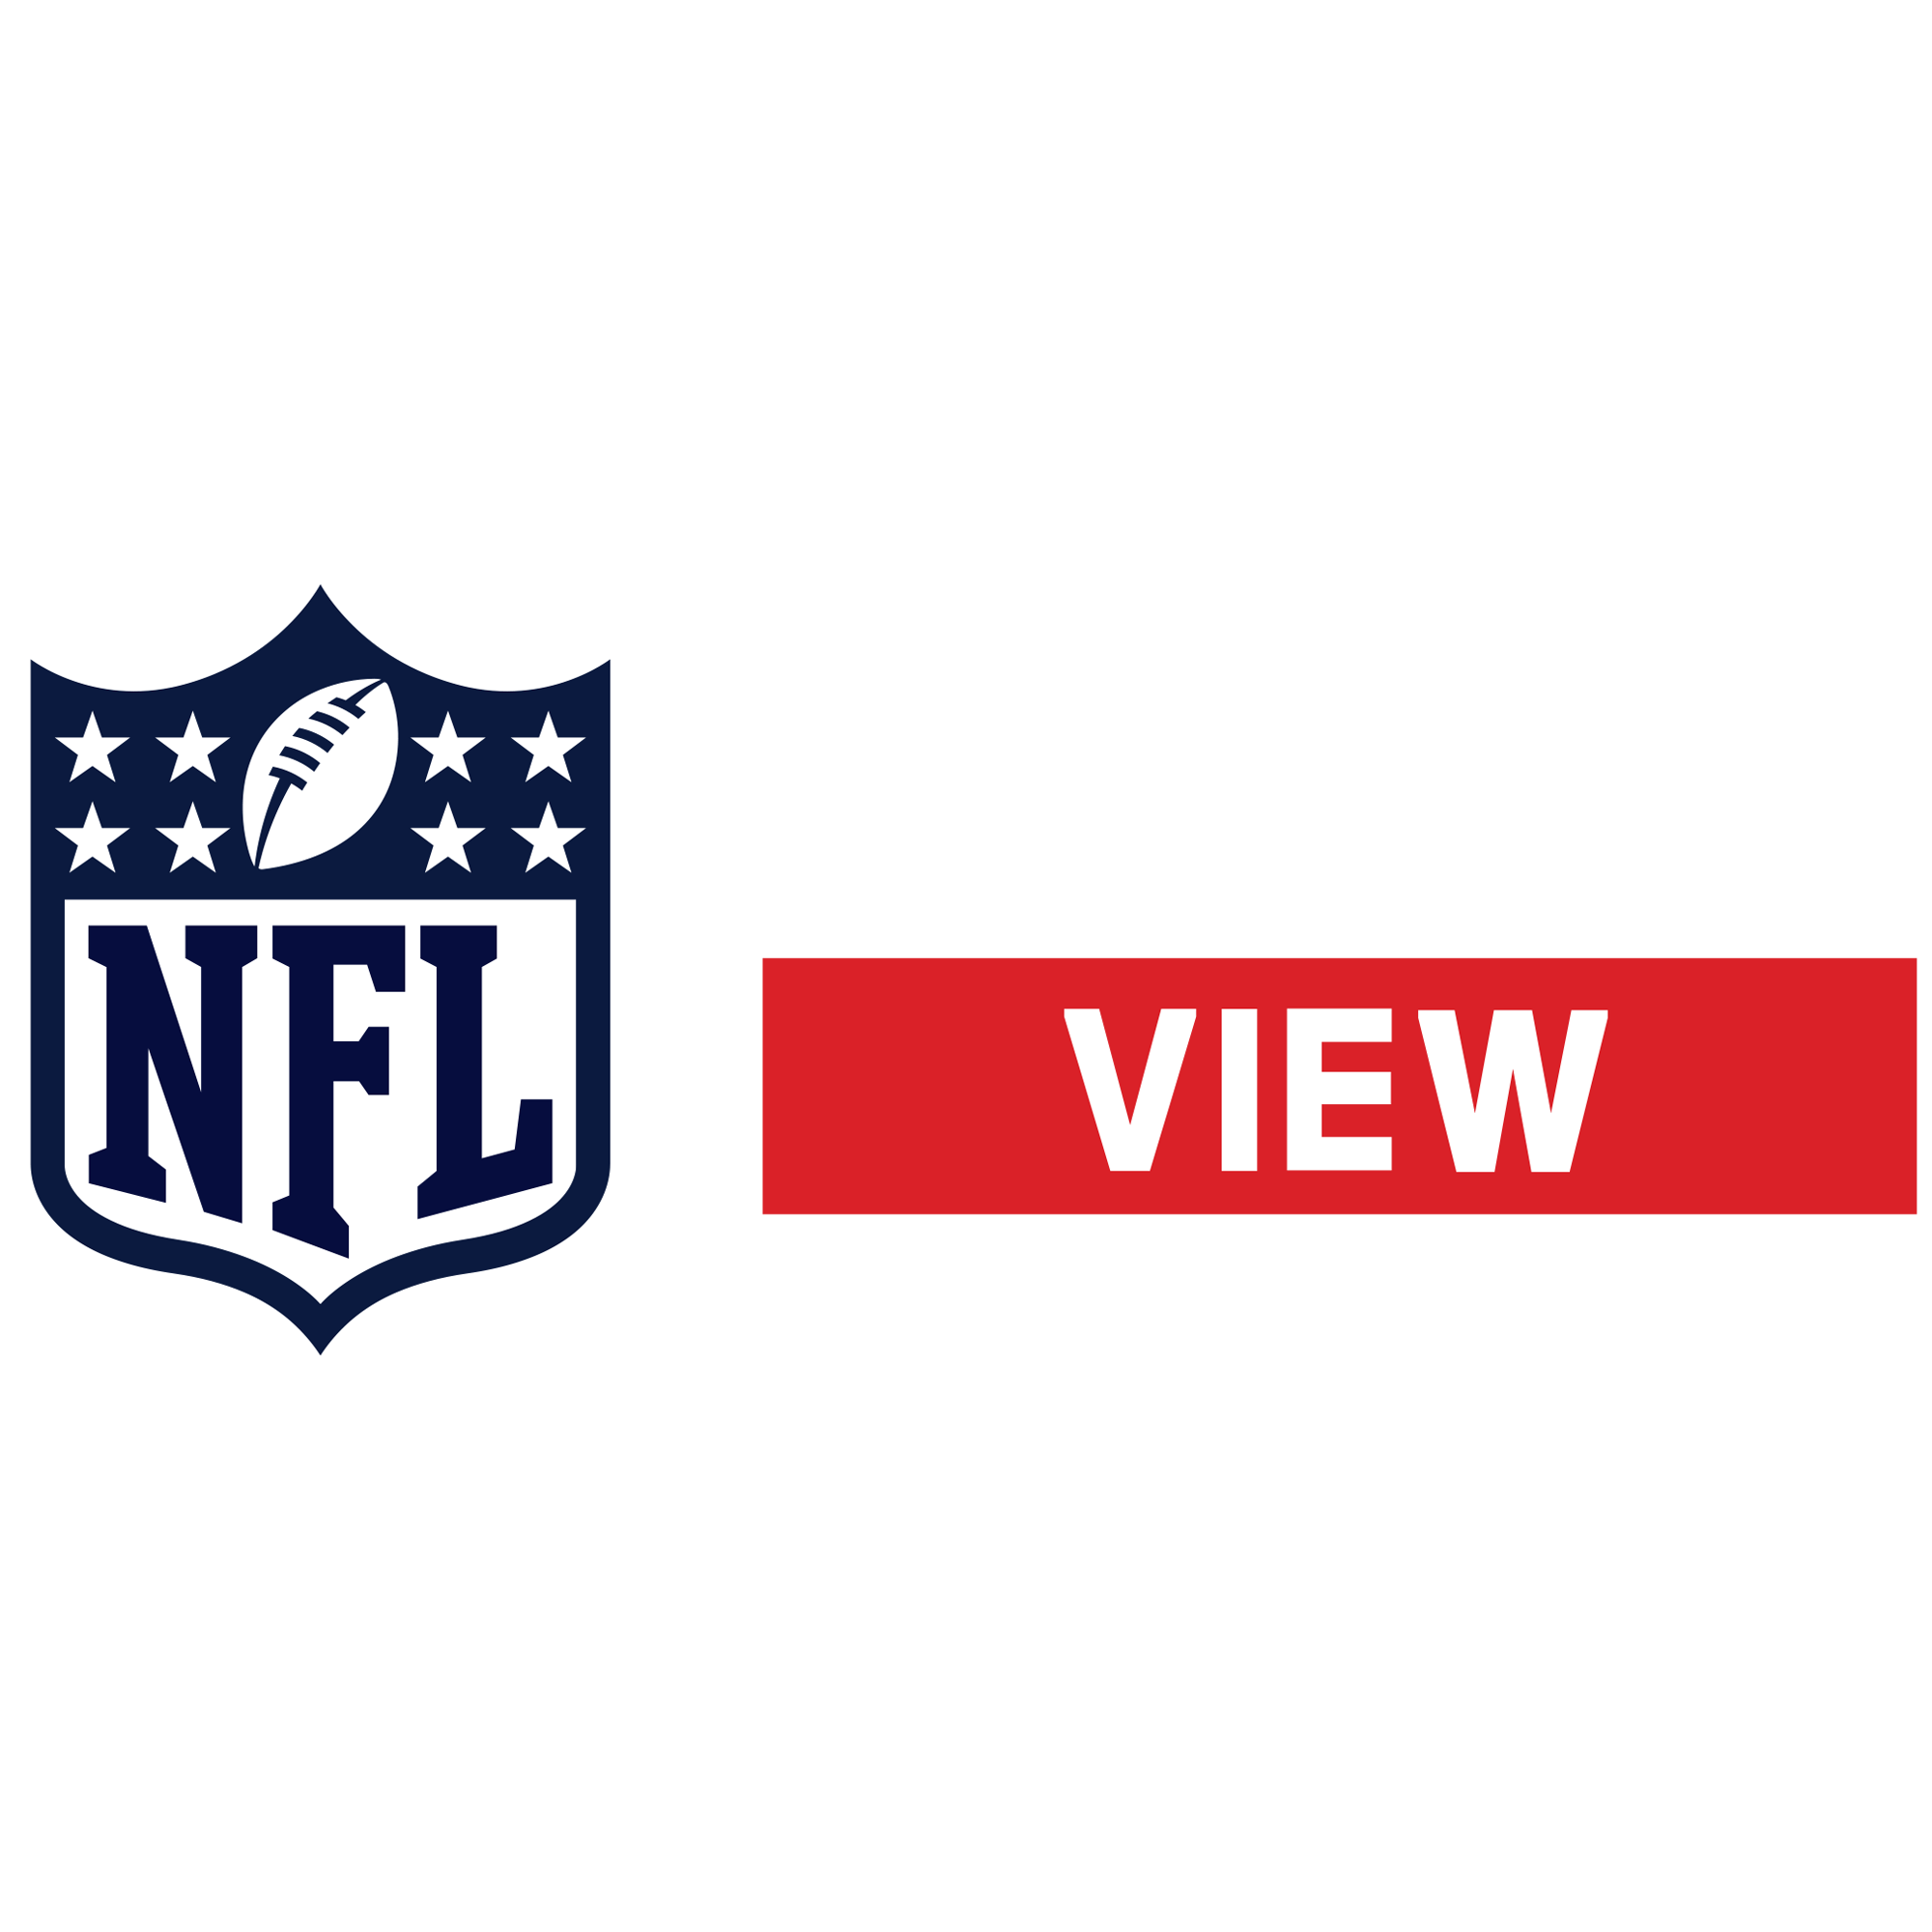 GameDayView_RGB_Stacked_Color_white